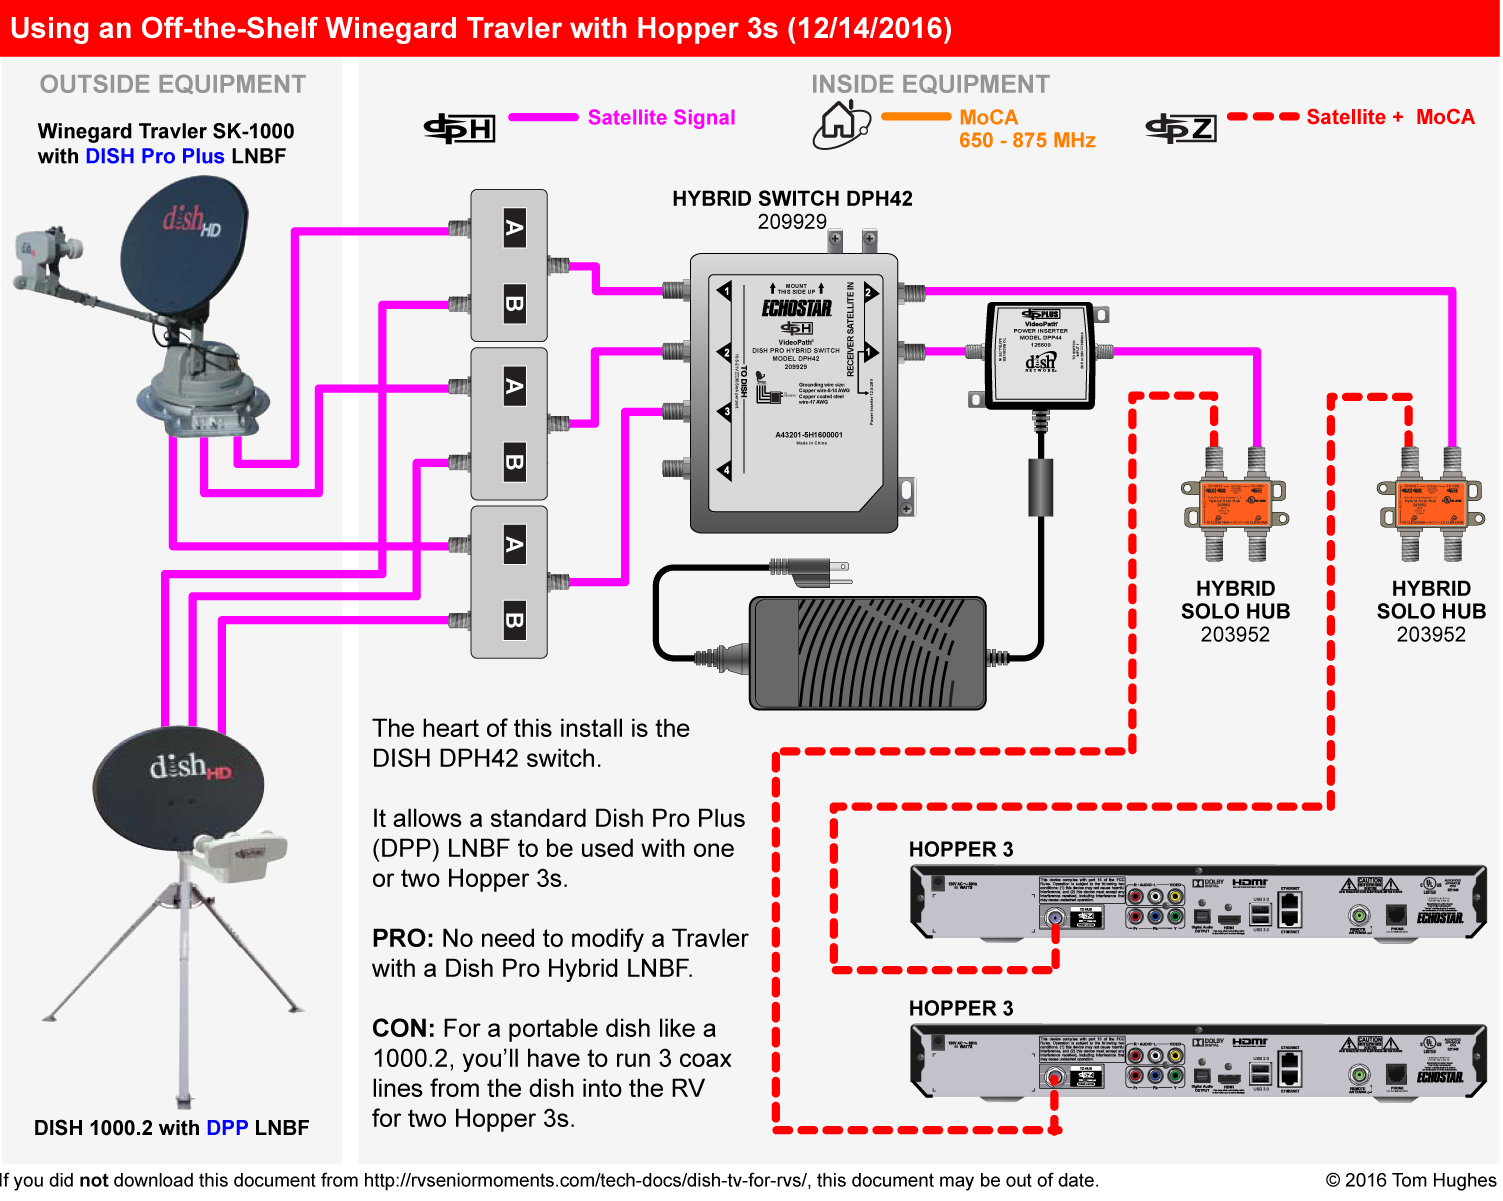 dph42_winegard travler_two_hopper3s dish tv for rvs rvseniormoments dish hopper 3 wiring diagram at nearapp.co